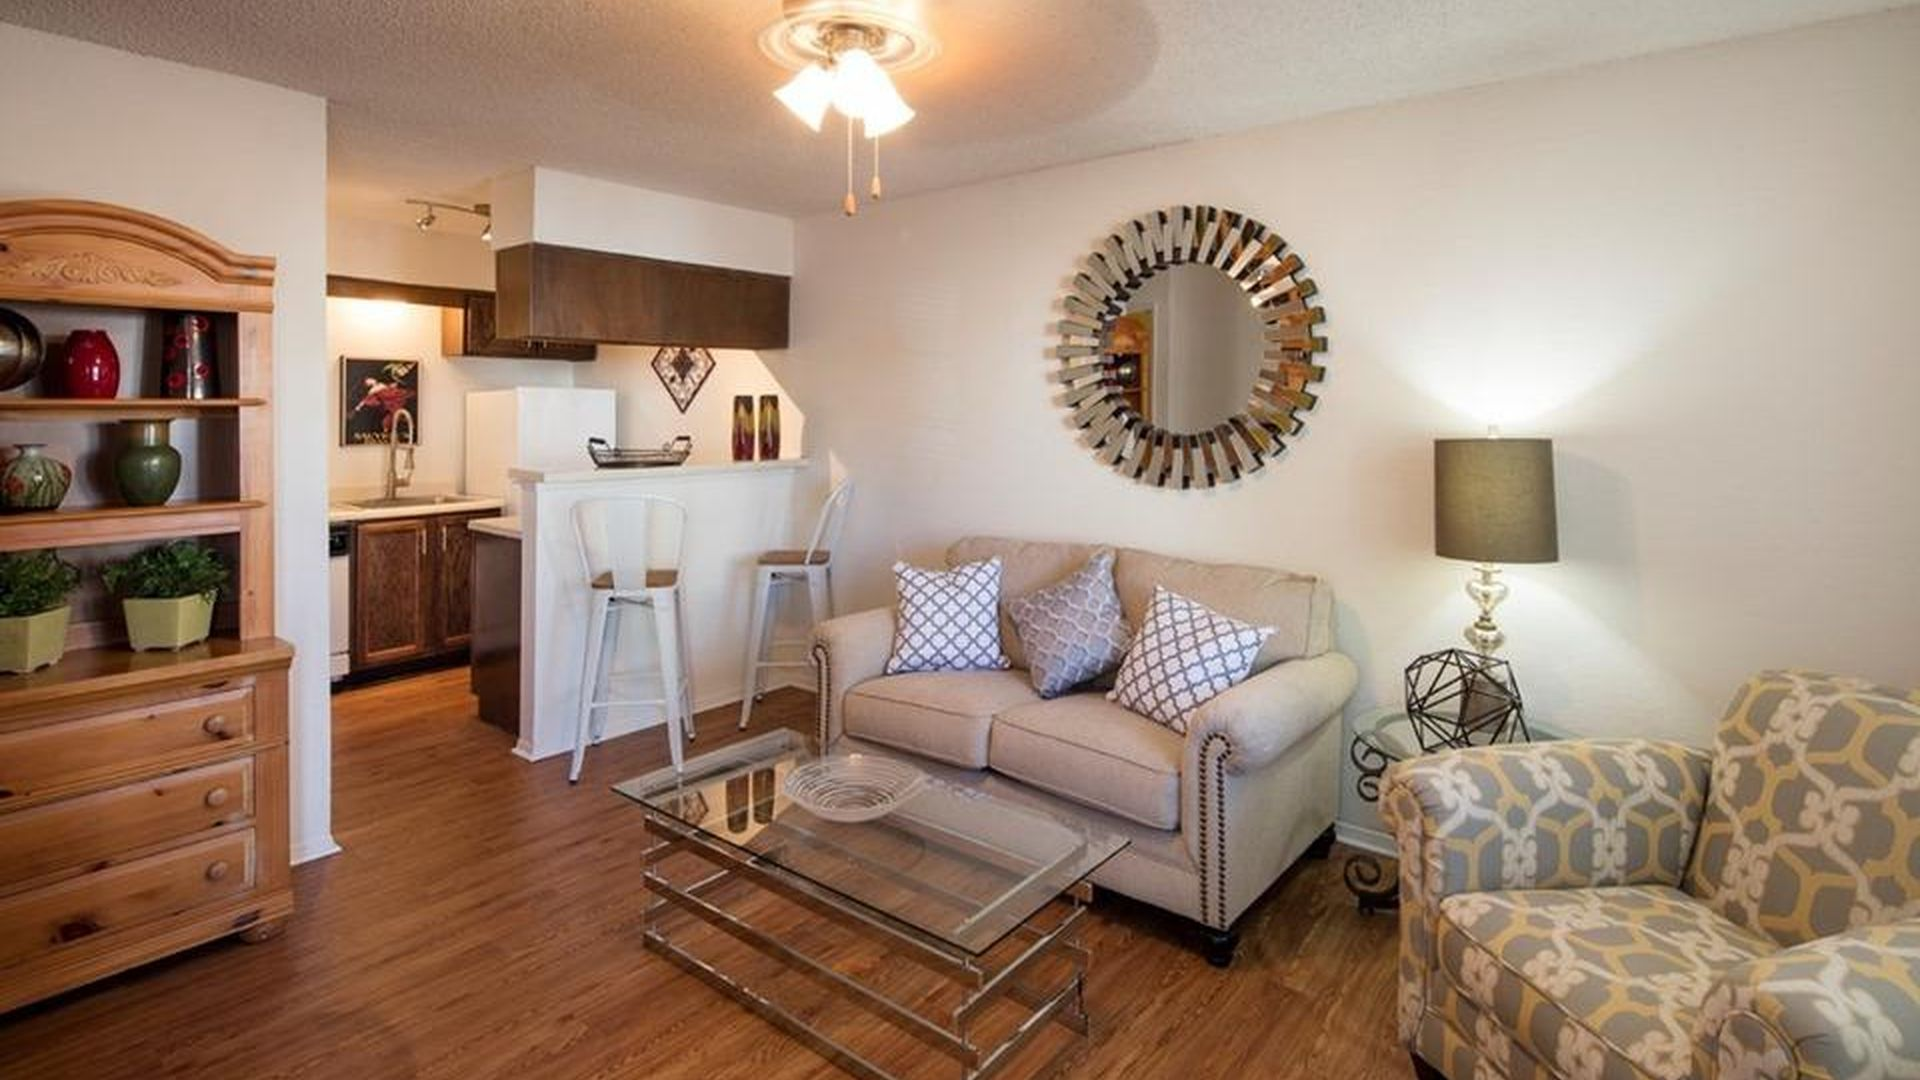 Peachy Studio Apartments For Rent In Tulsa Ok Zillow Home Interior And Landscaping Palasignezvosmurscom